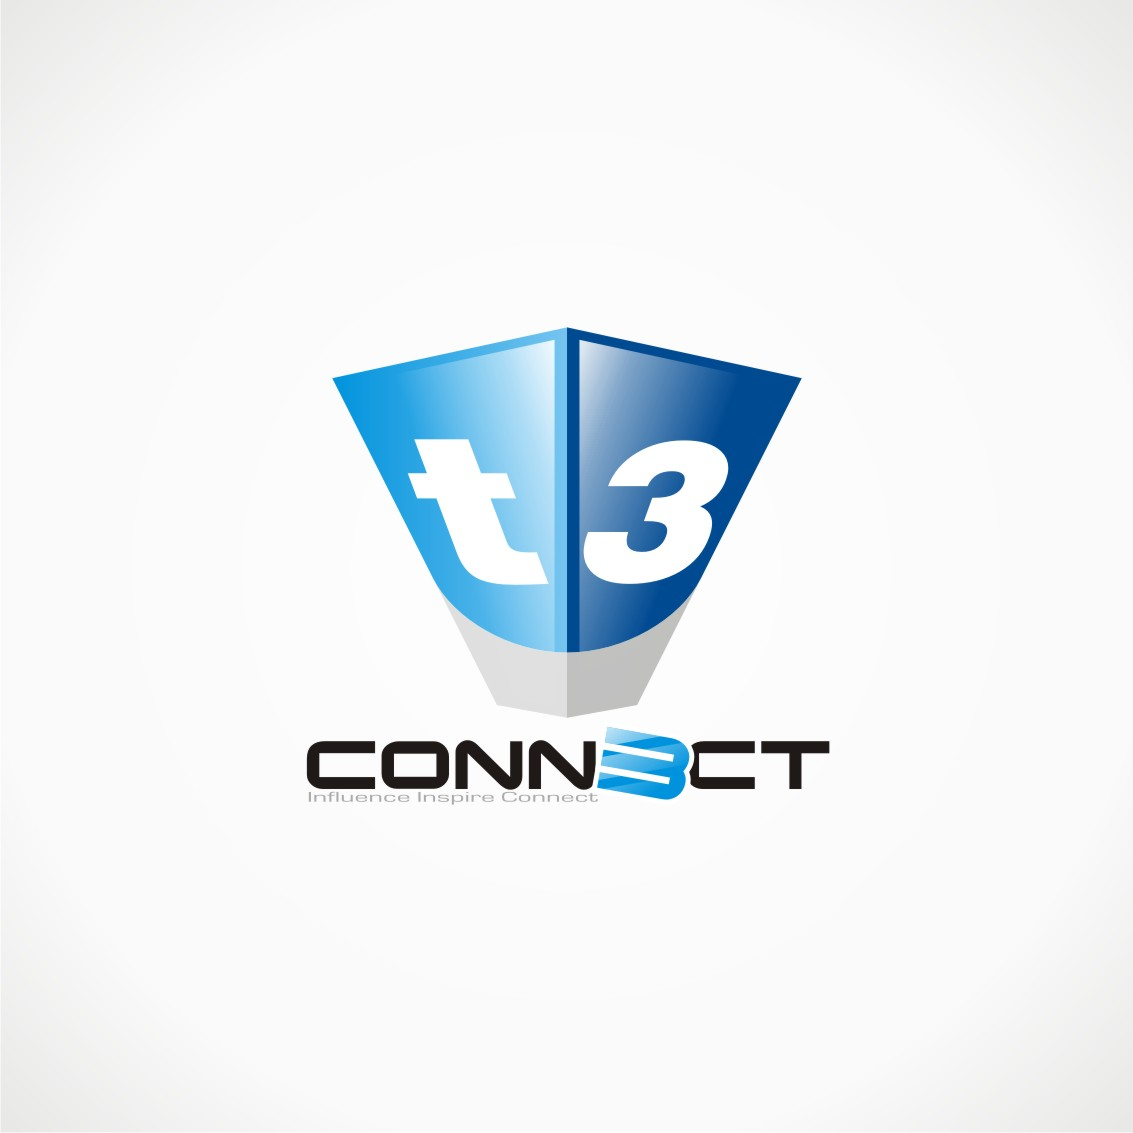 Logo Design by chandezin - Entry No. 19 in the Logo Design Contest T3 CONNECT Sports Marketing logo.